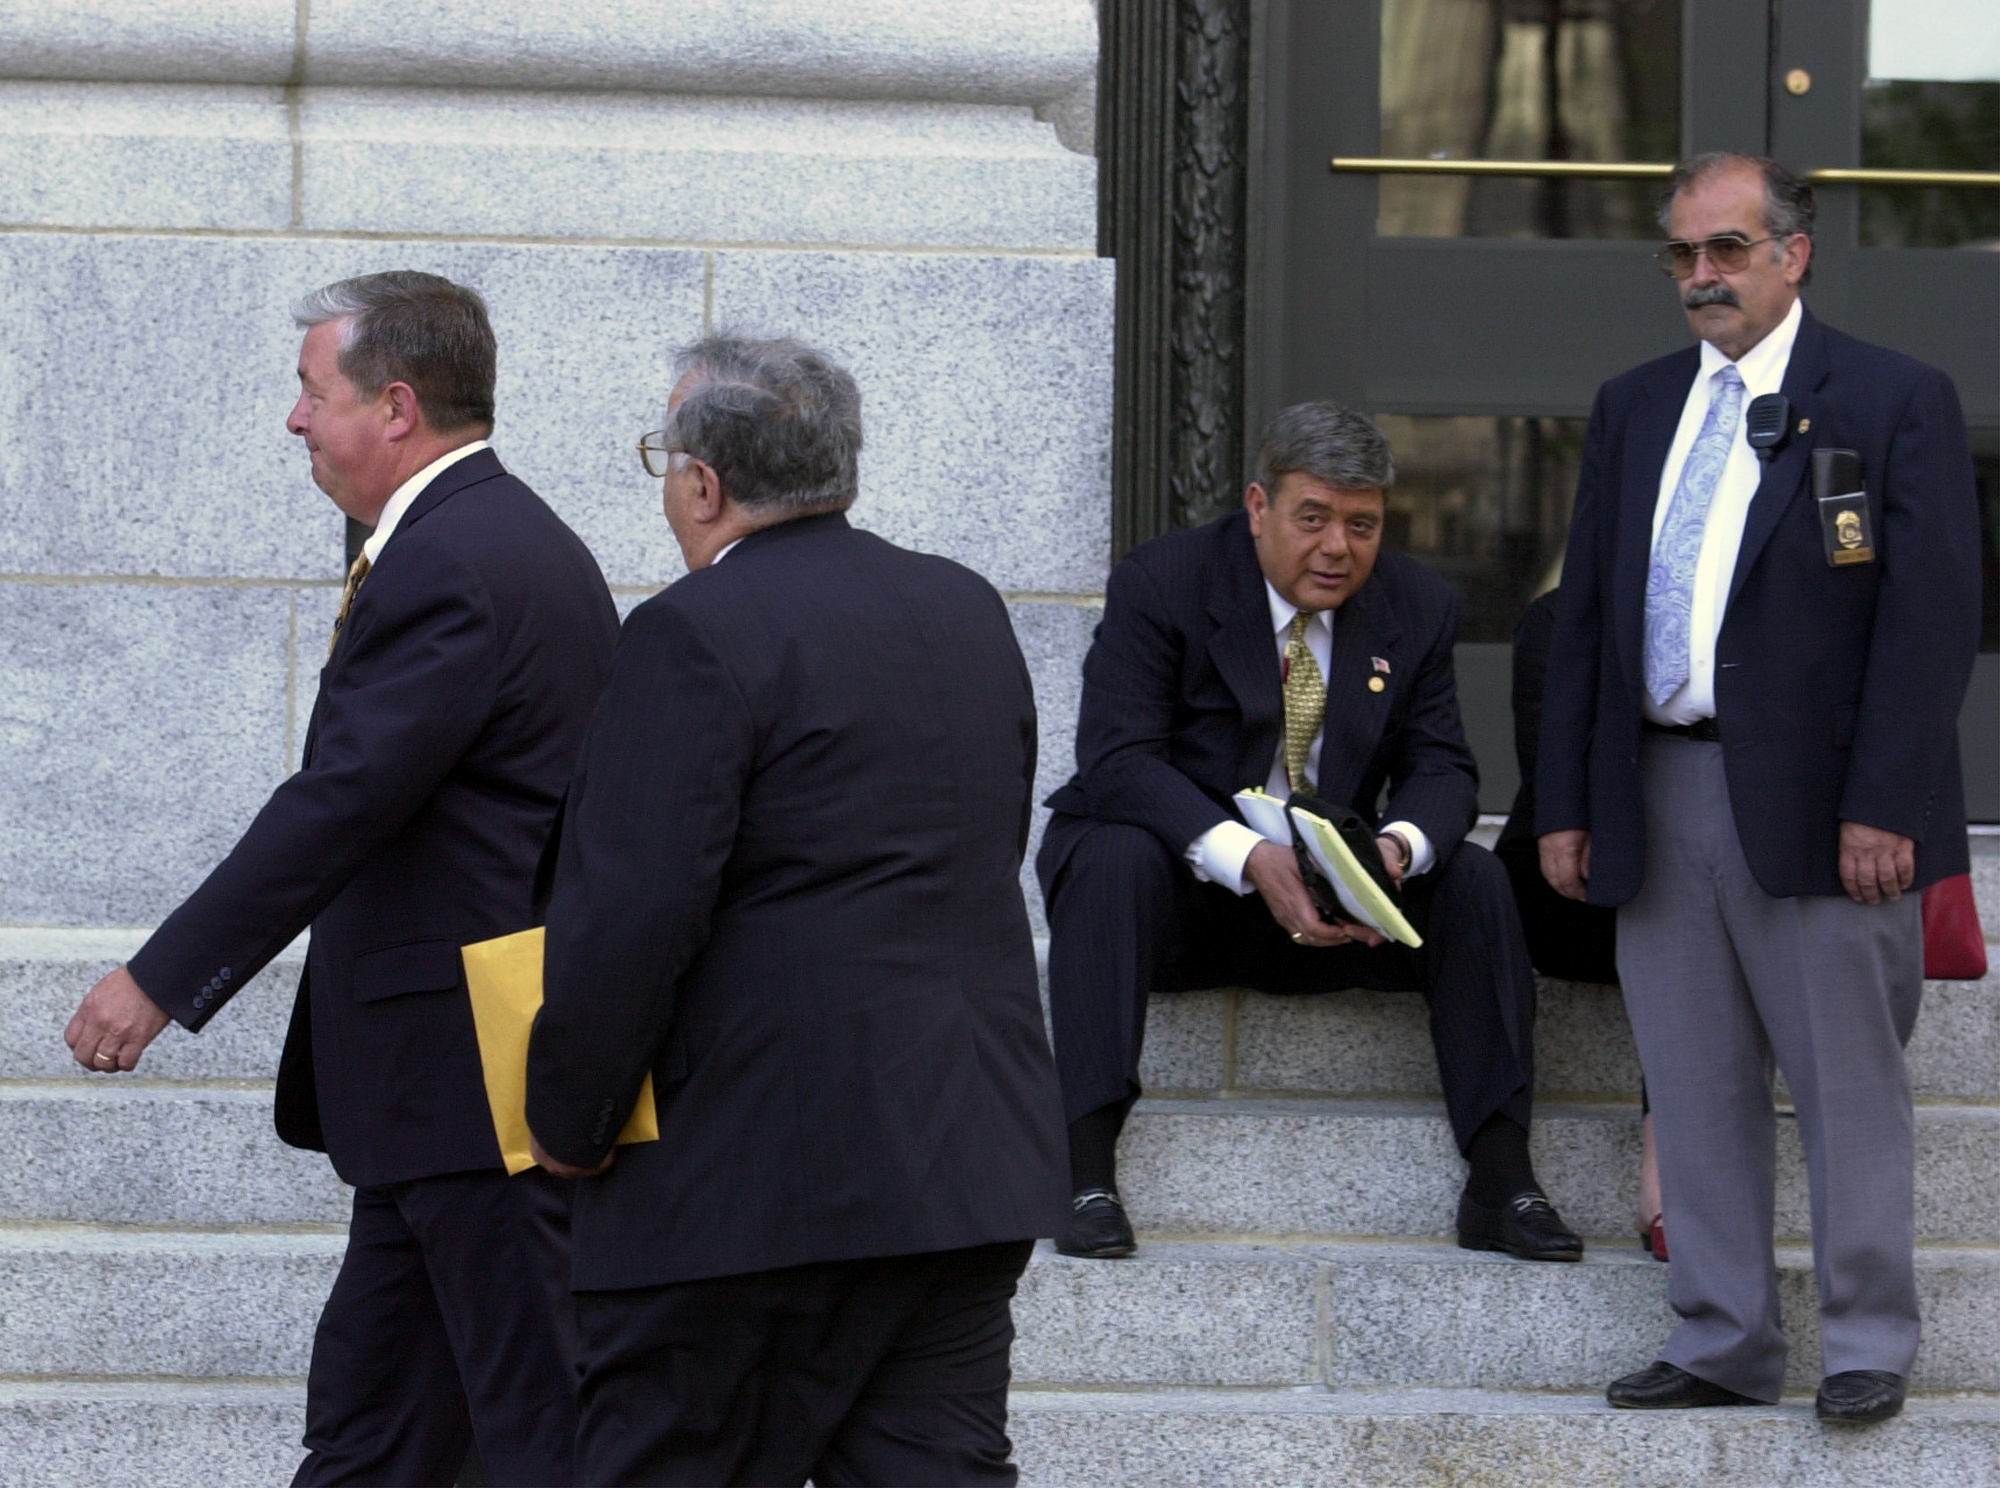 Buddy Cianci watches as Dennis Aiken, left, walks into U.S. District Court with David Ead. The former vice chairman of the Providence tax assessment review board, Ead struck a deal with investigators and agreed to be a witness for the prosecution.  Courtesy of The Providence Journal/Mary Murphy.